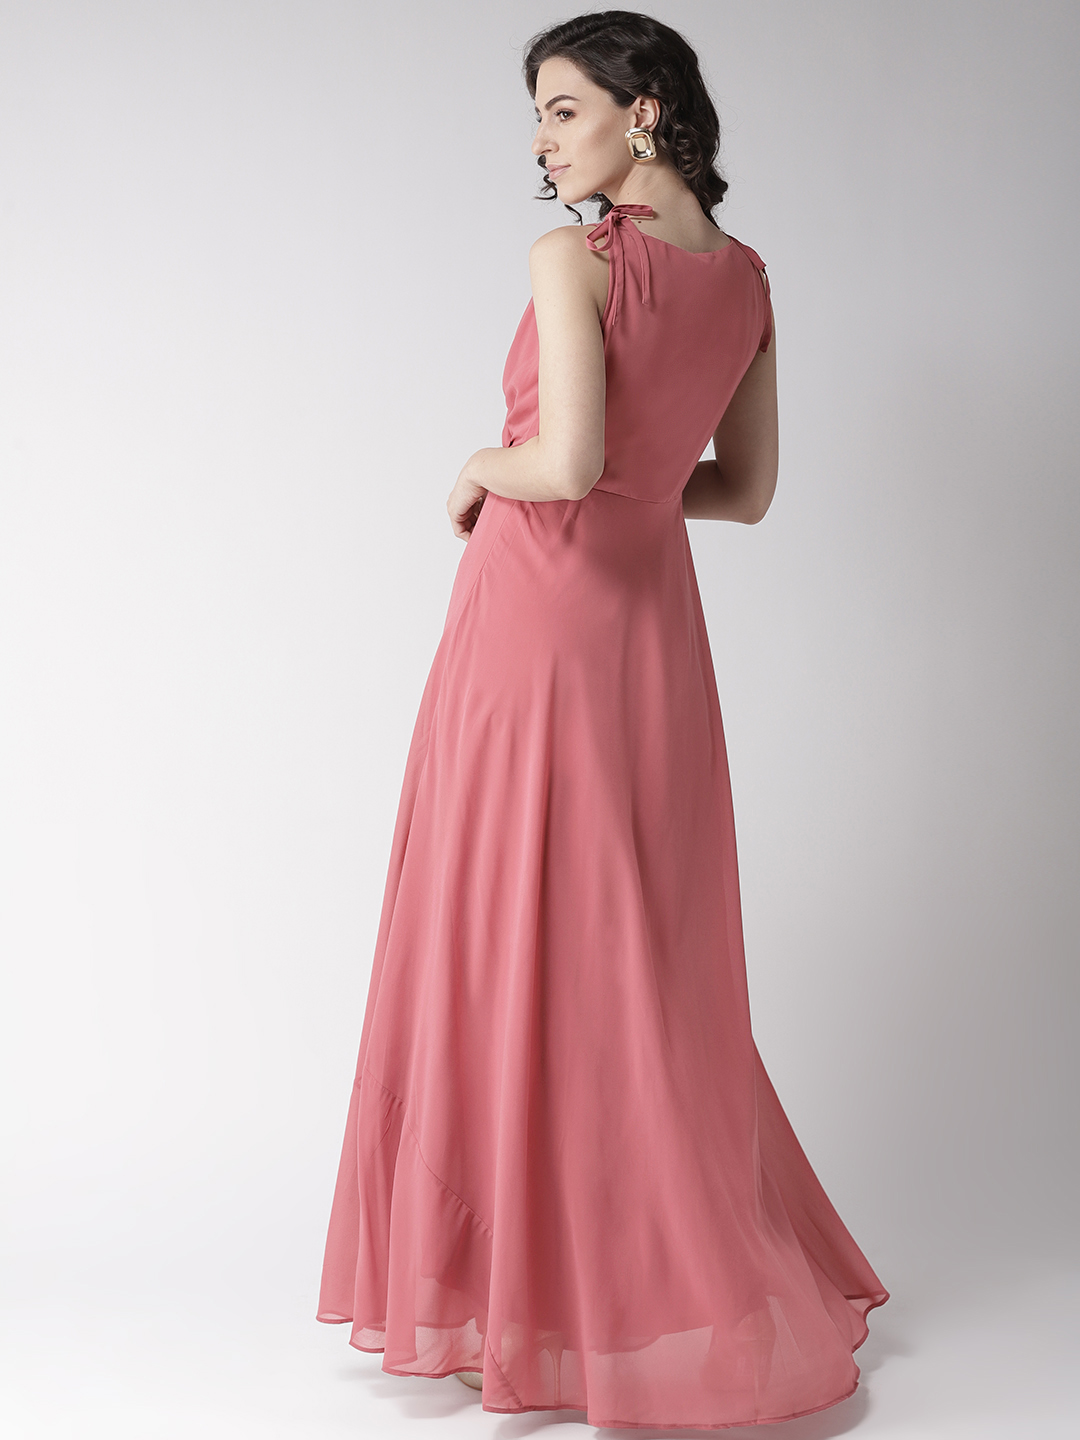 Dresses-Ready For The Royals Pink Maxi Dress5